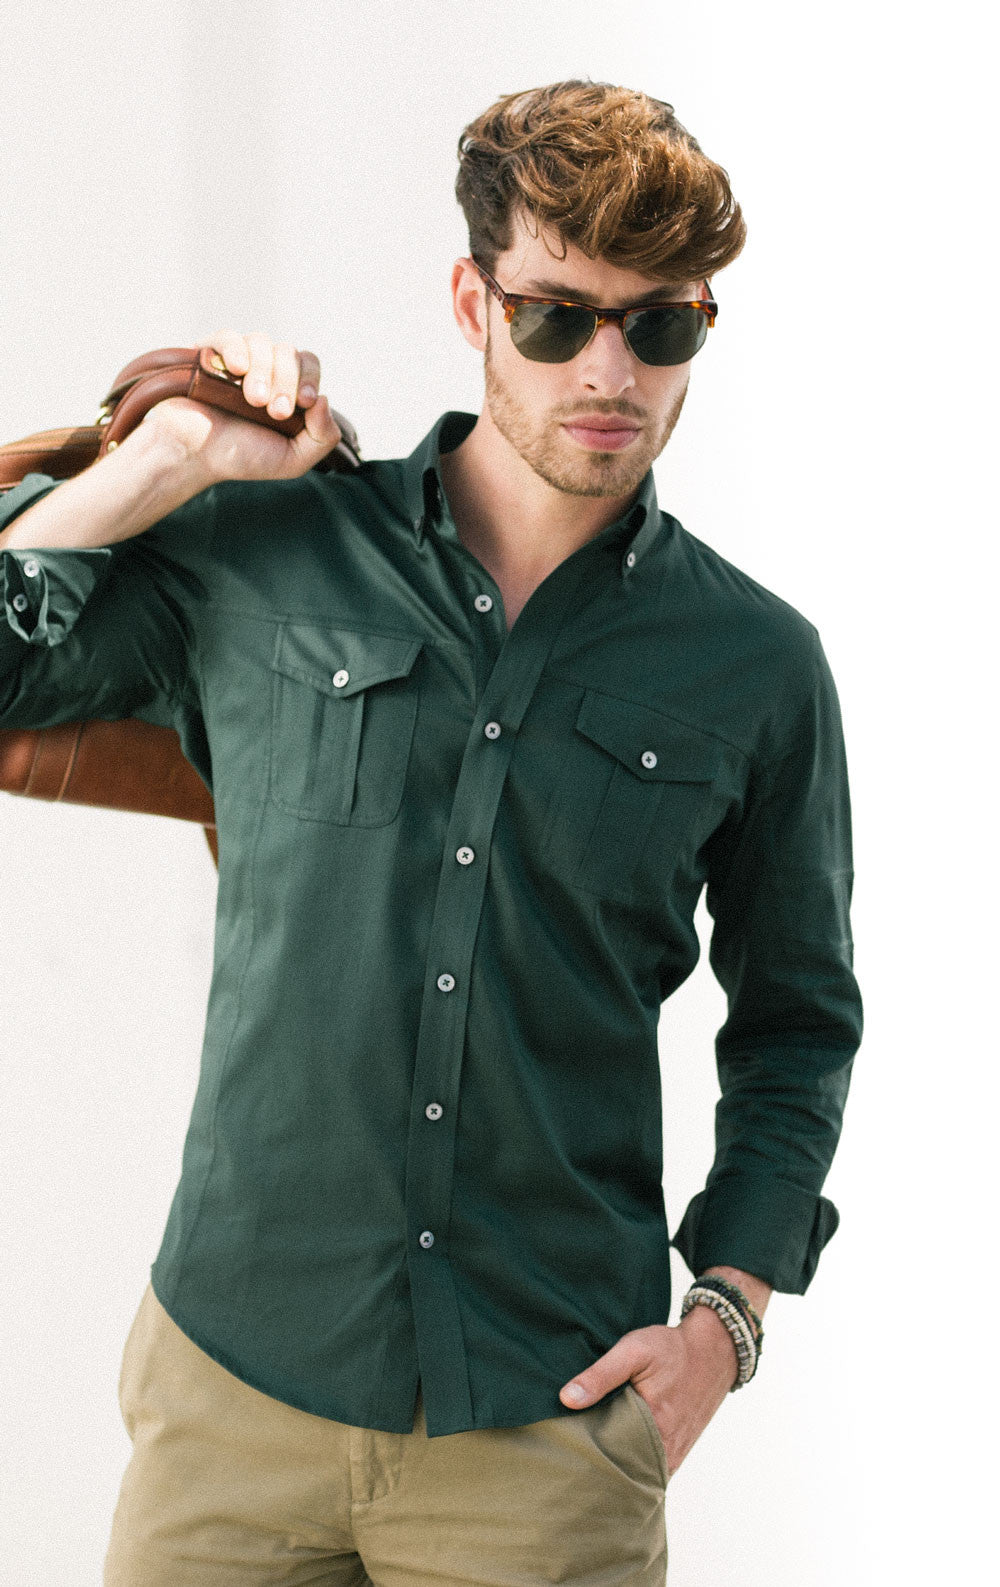 Men's Outfit Guide: The fundamentals of great casual ...